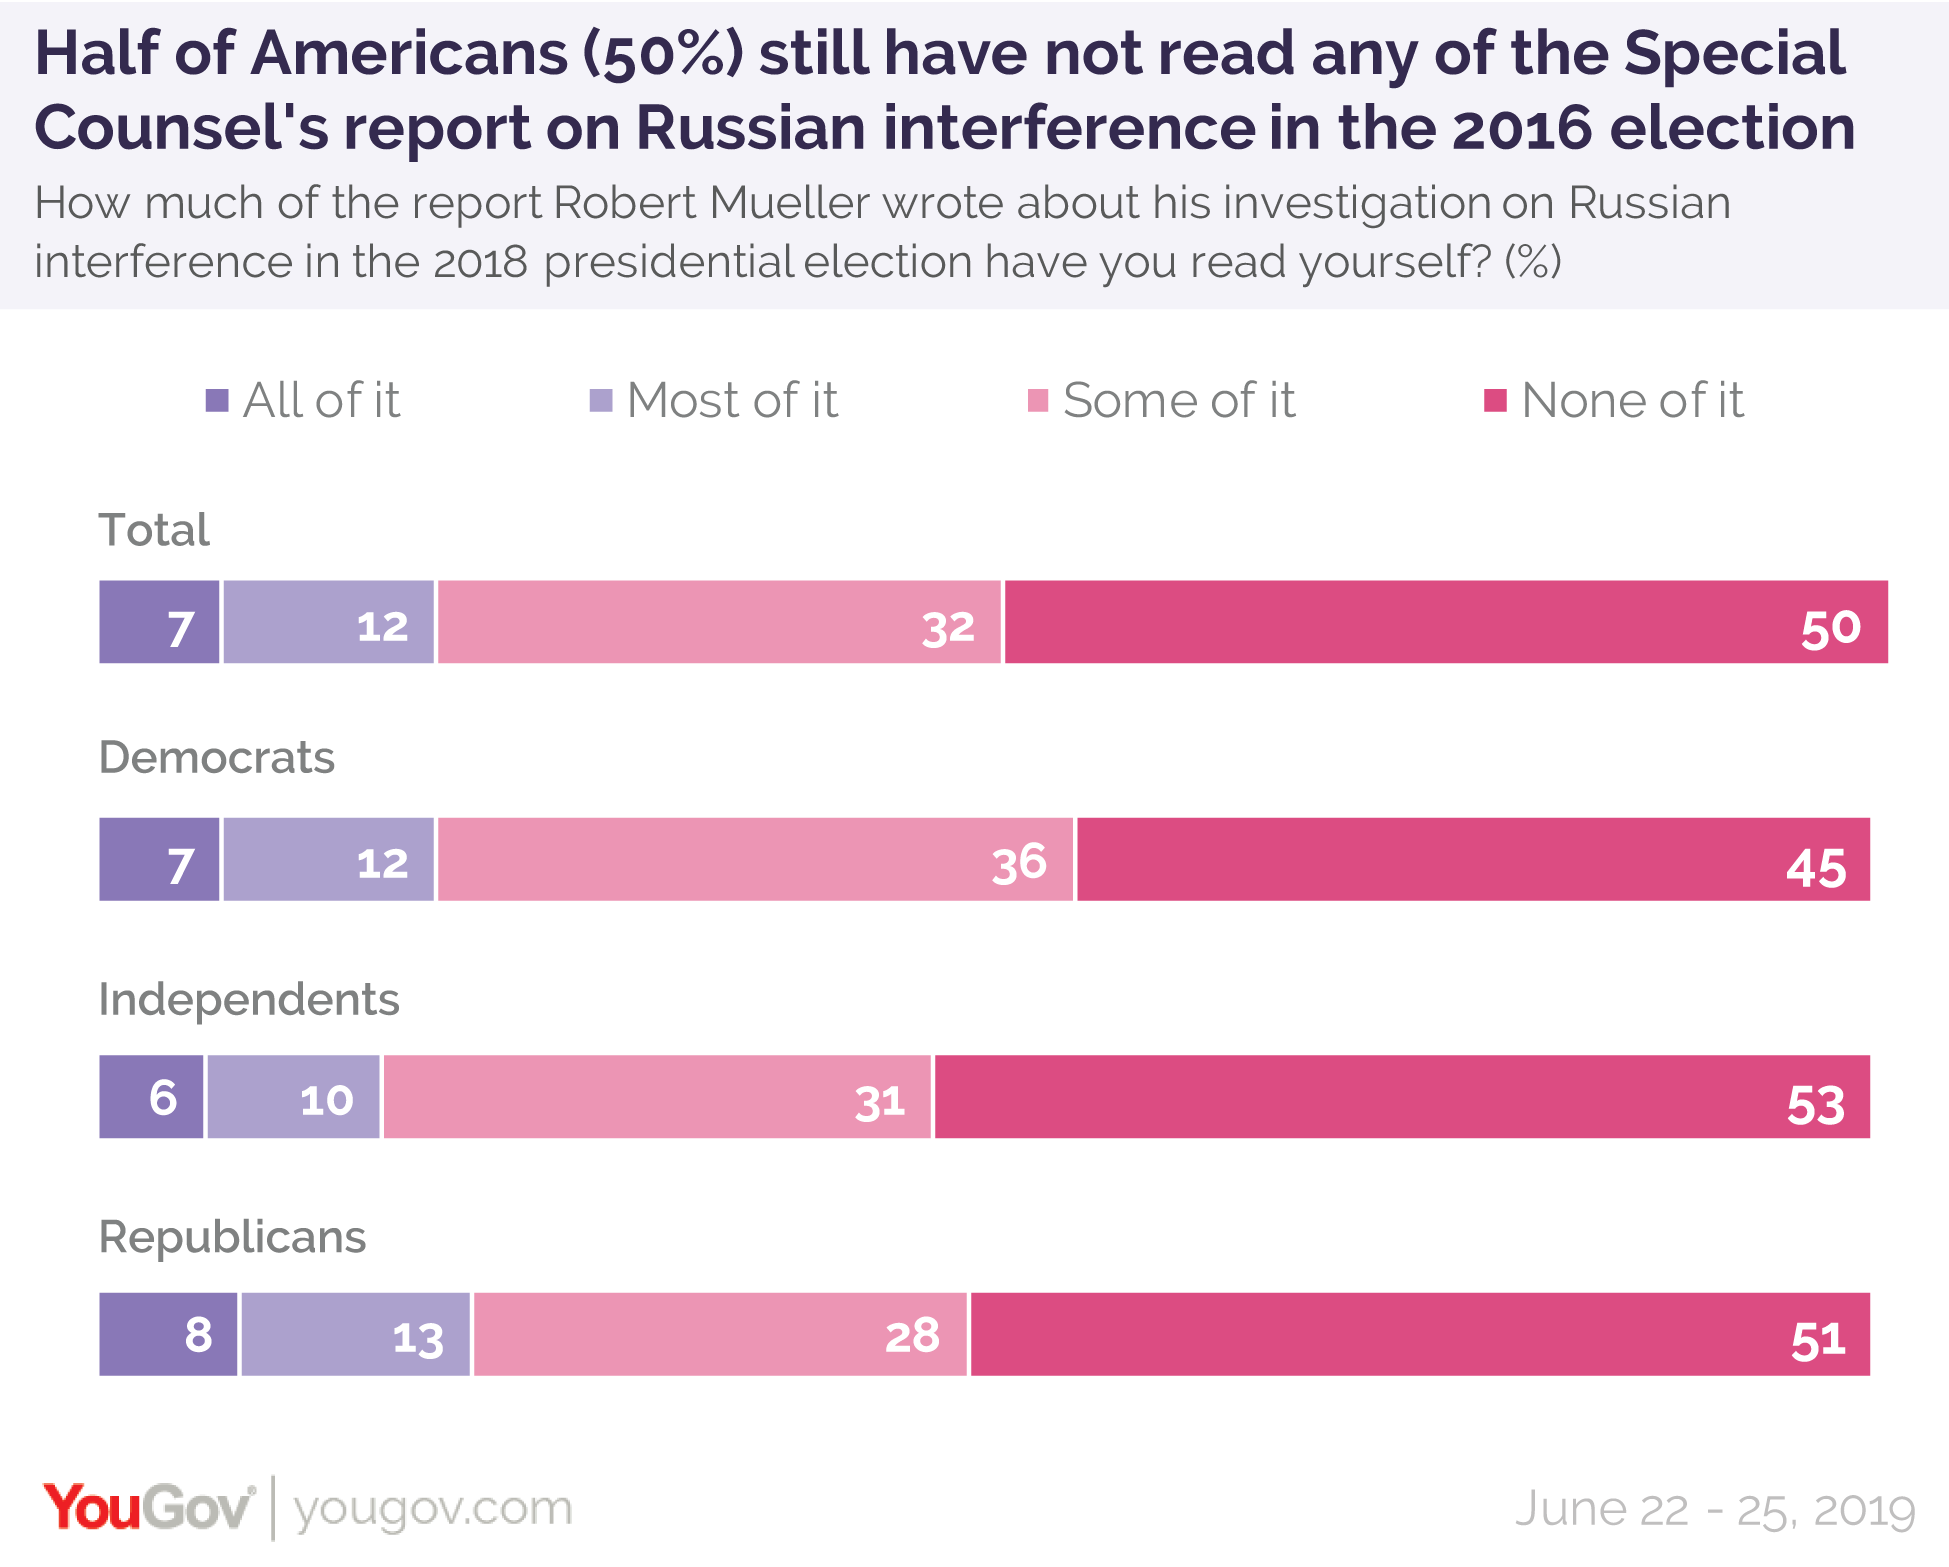 Half of Americans still have not read any of the Special Counsel's report on Russian interference in the 2016 election